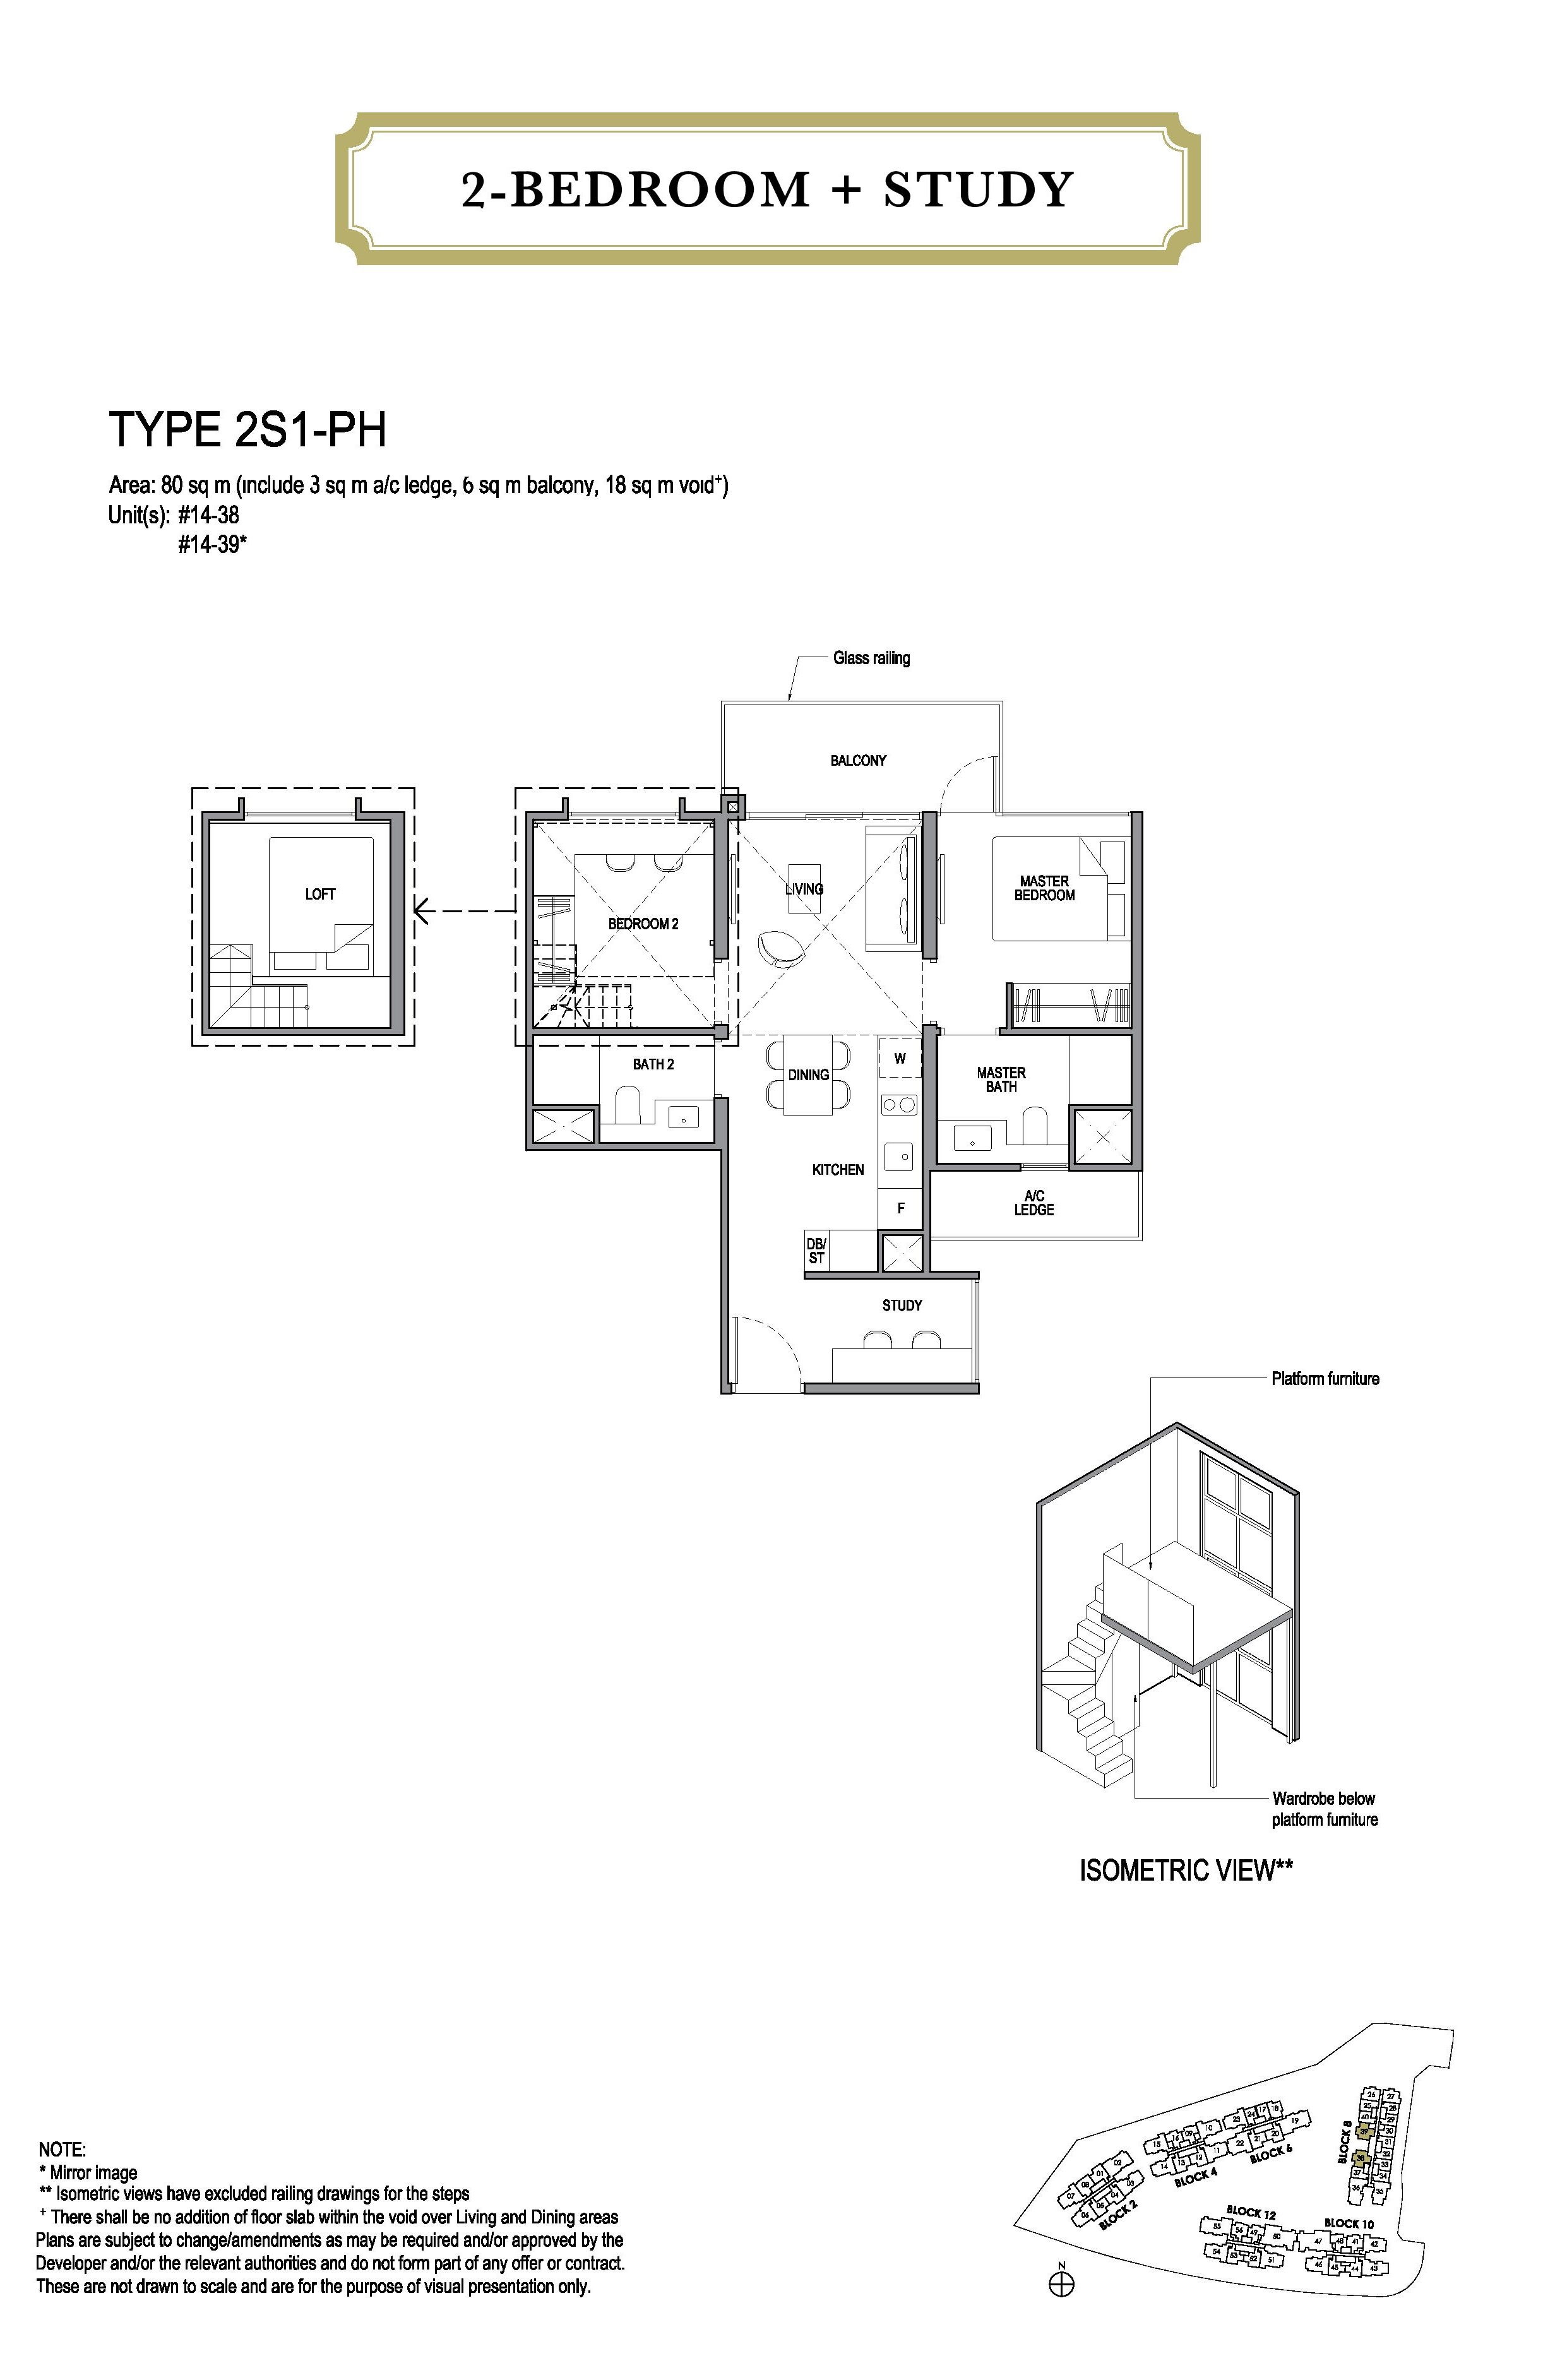 Park Colonial 2 Bedroom + Study Floor Plans Type 2S1-PH